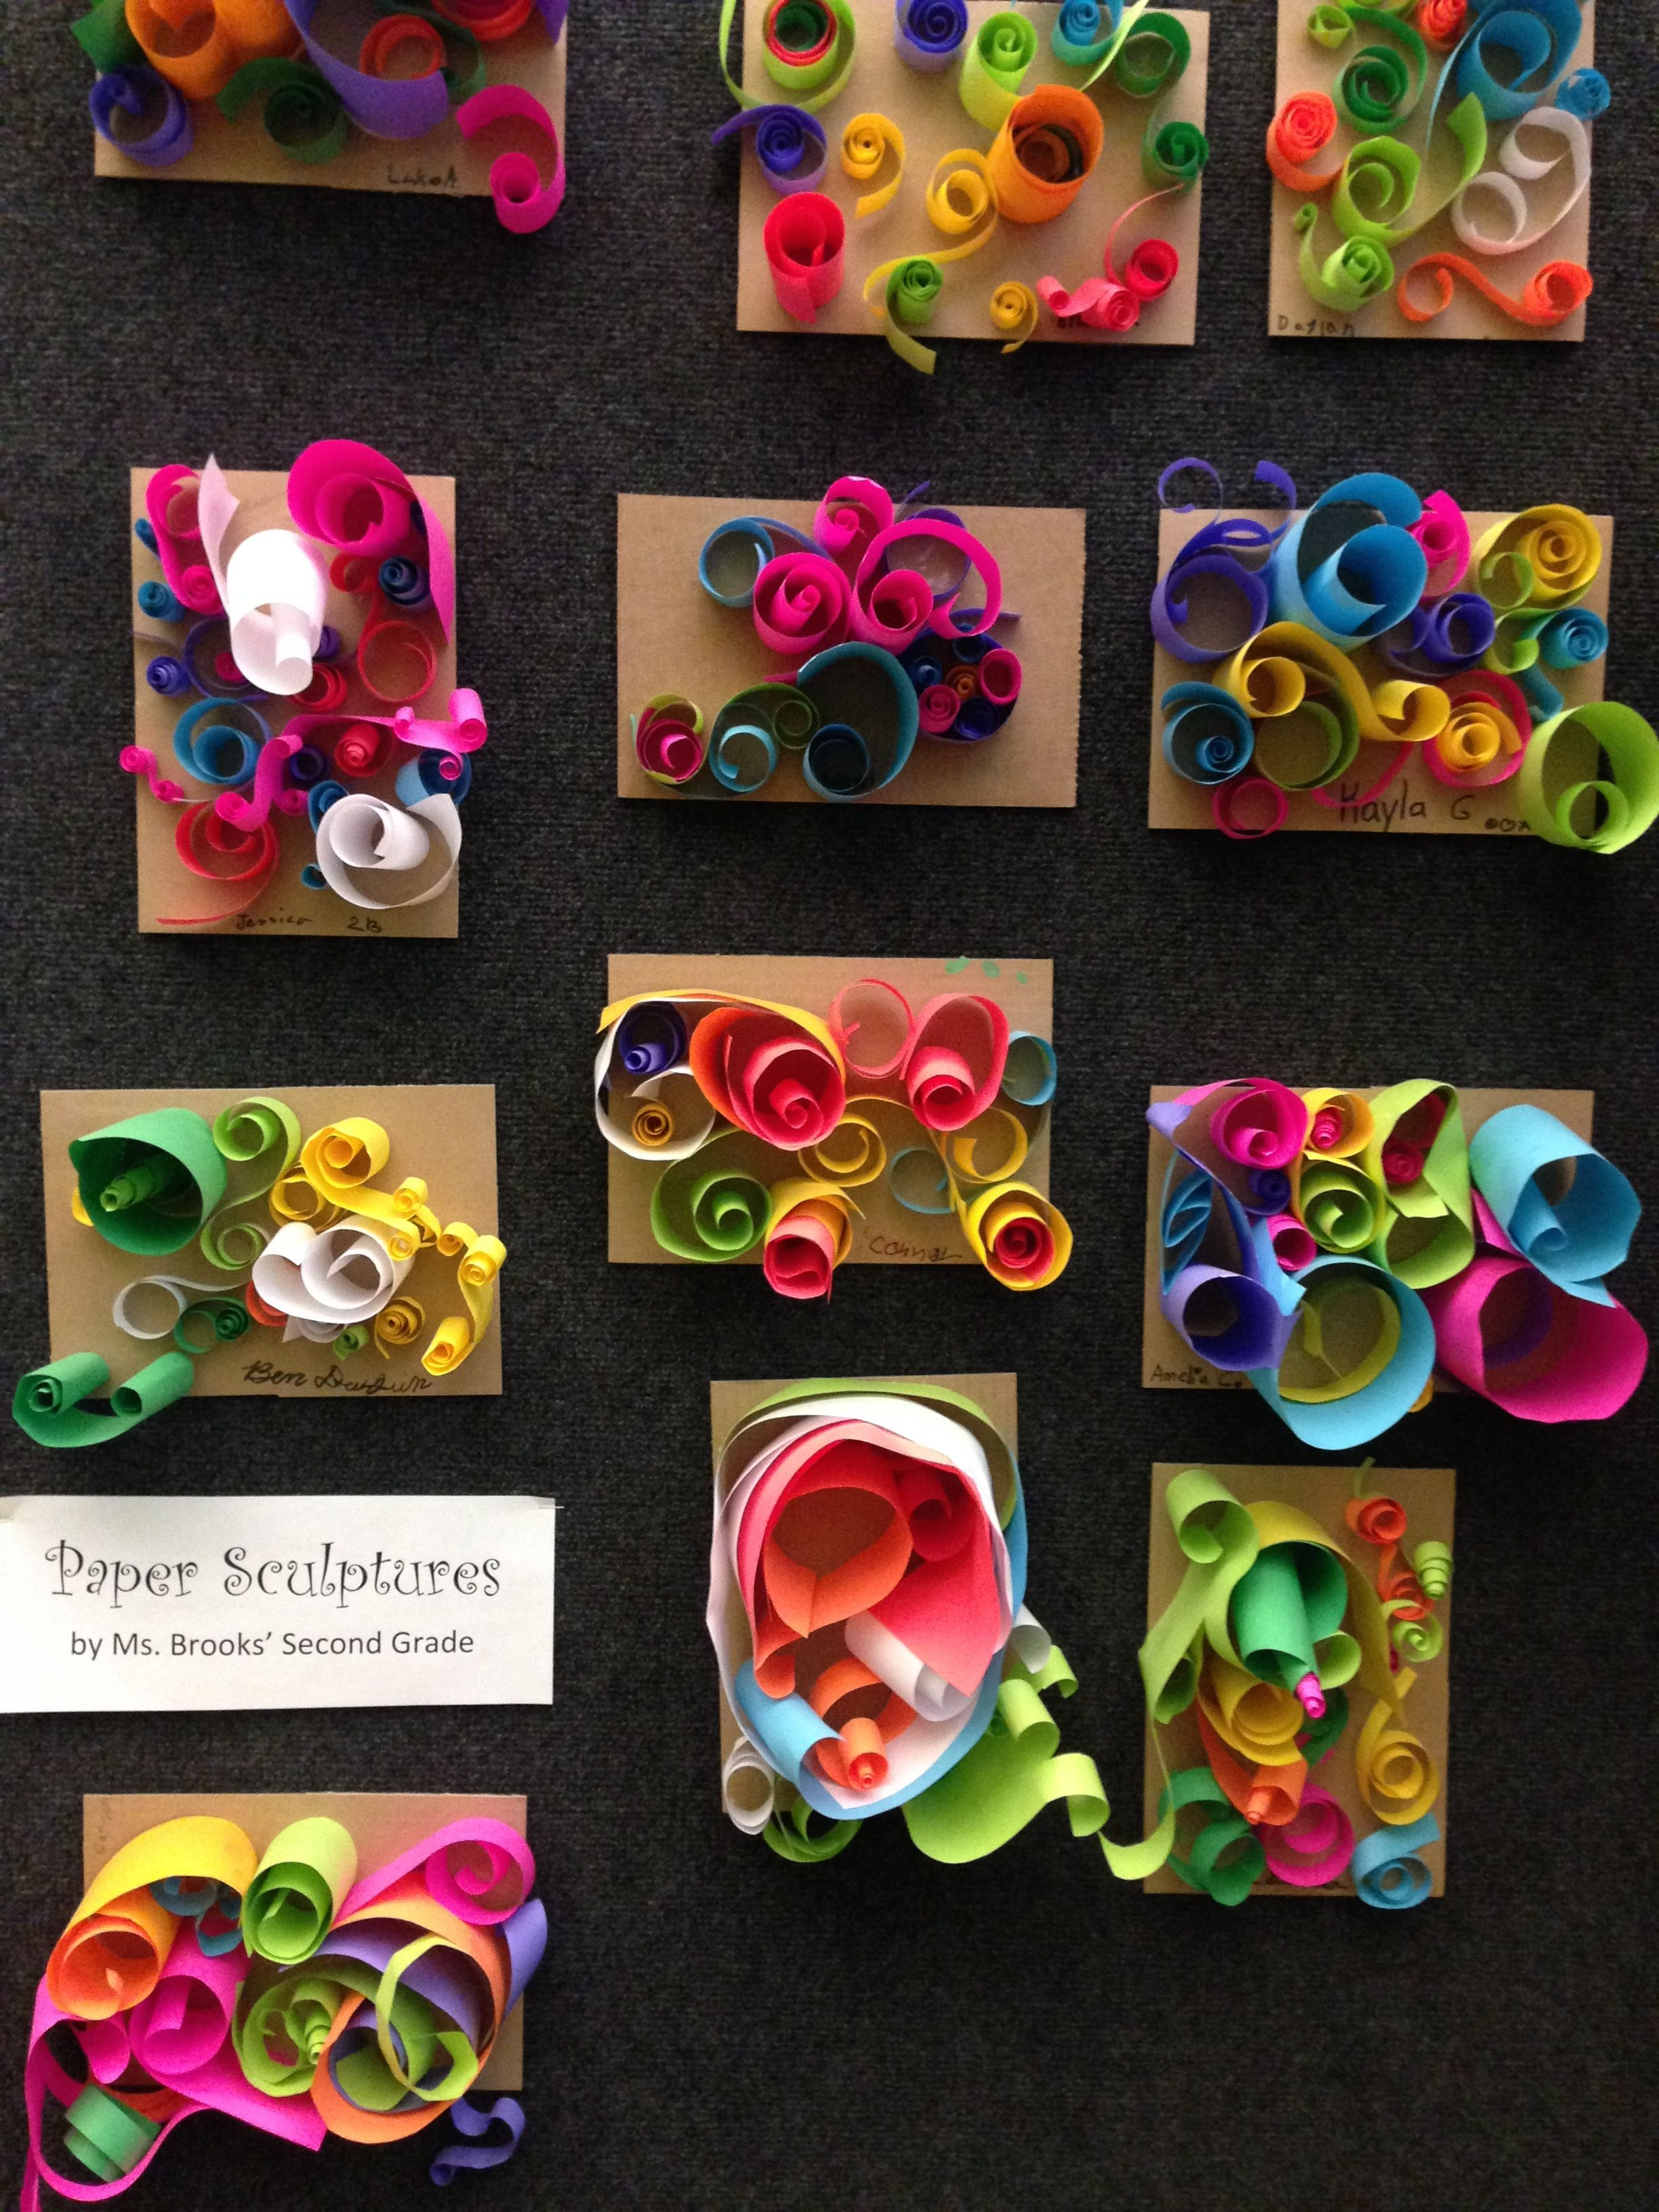 2nd Grade Paper Sculptures Reminding Us Of The Work Of